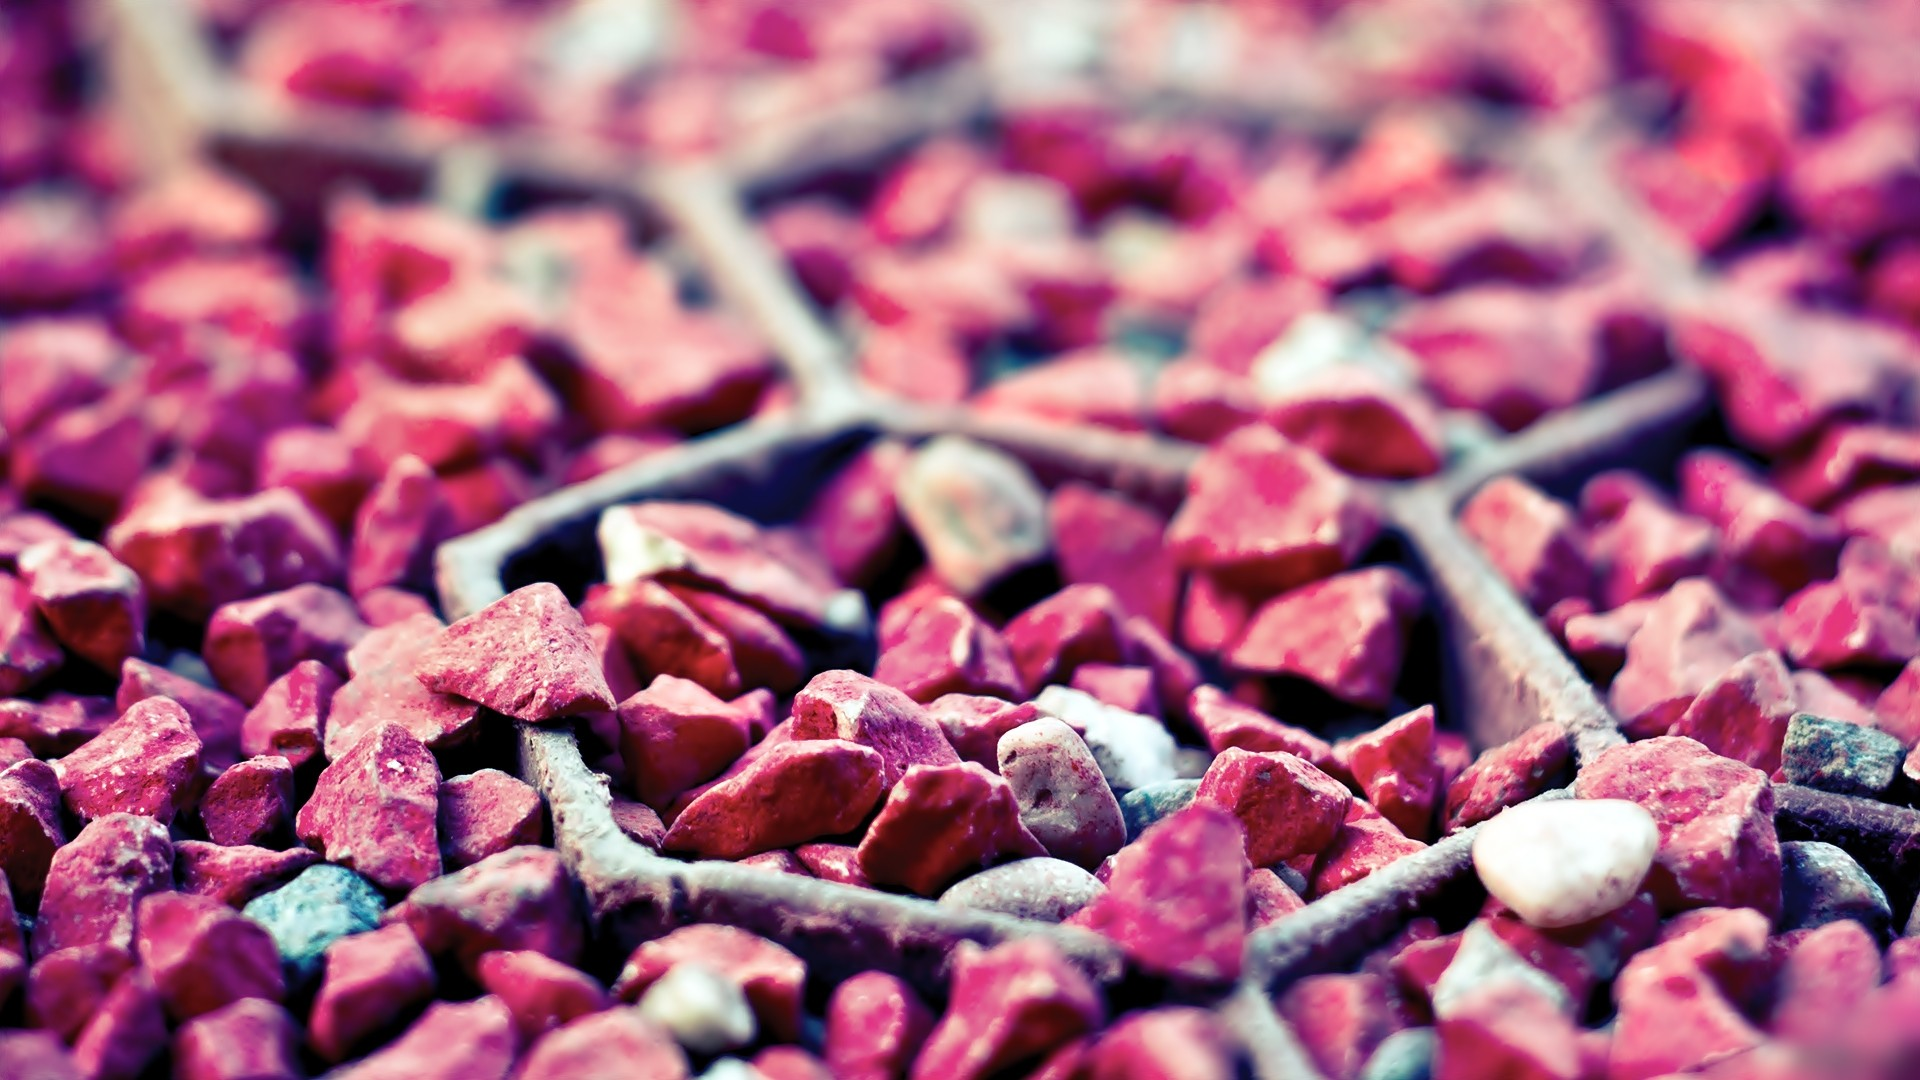 Pink Pebbles Wallpaper